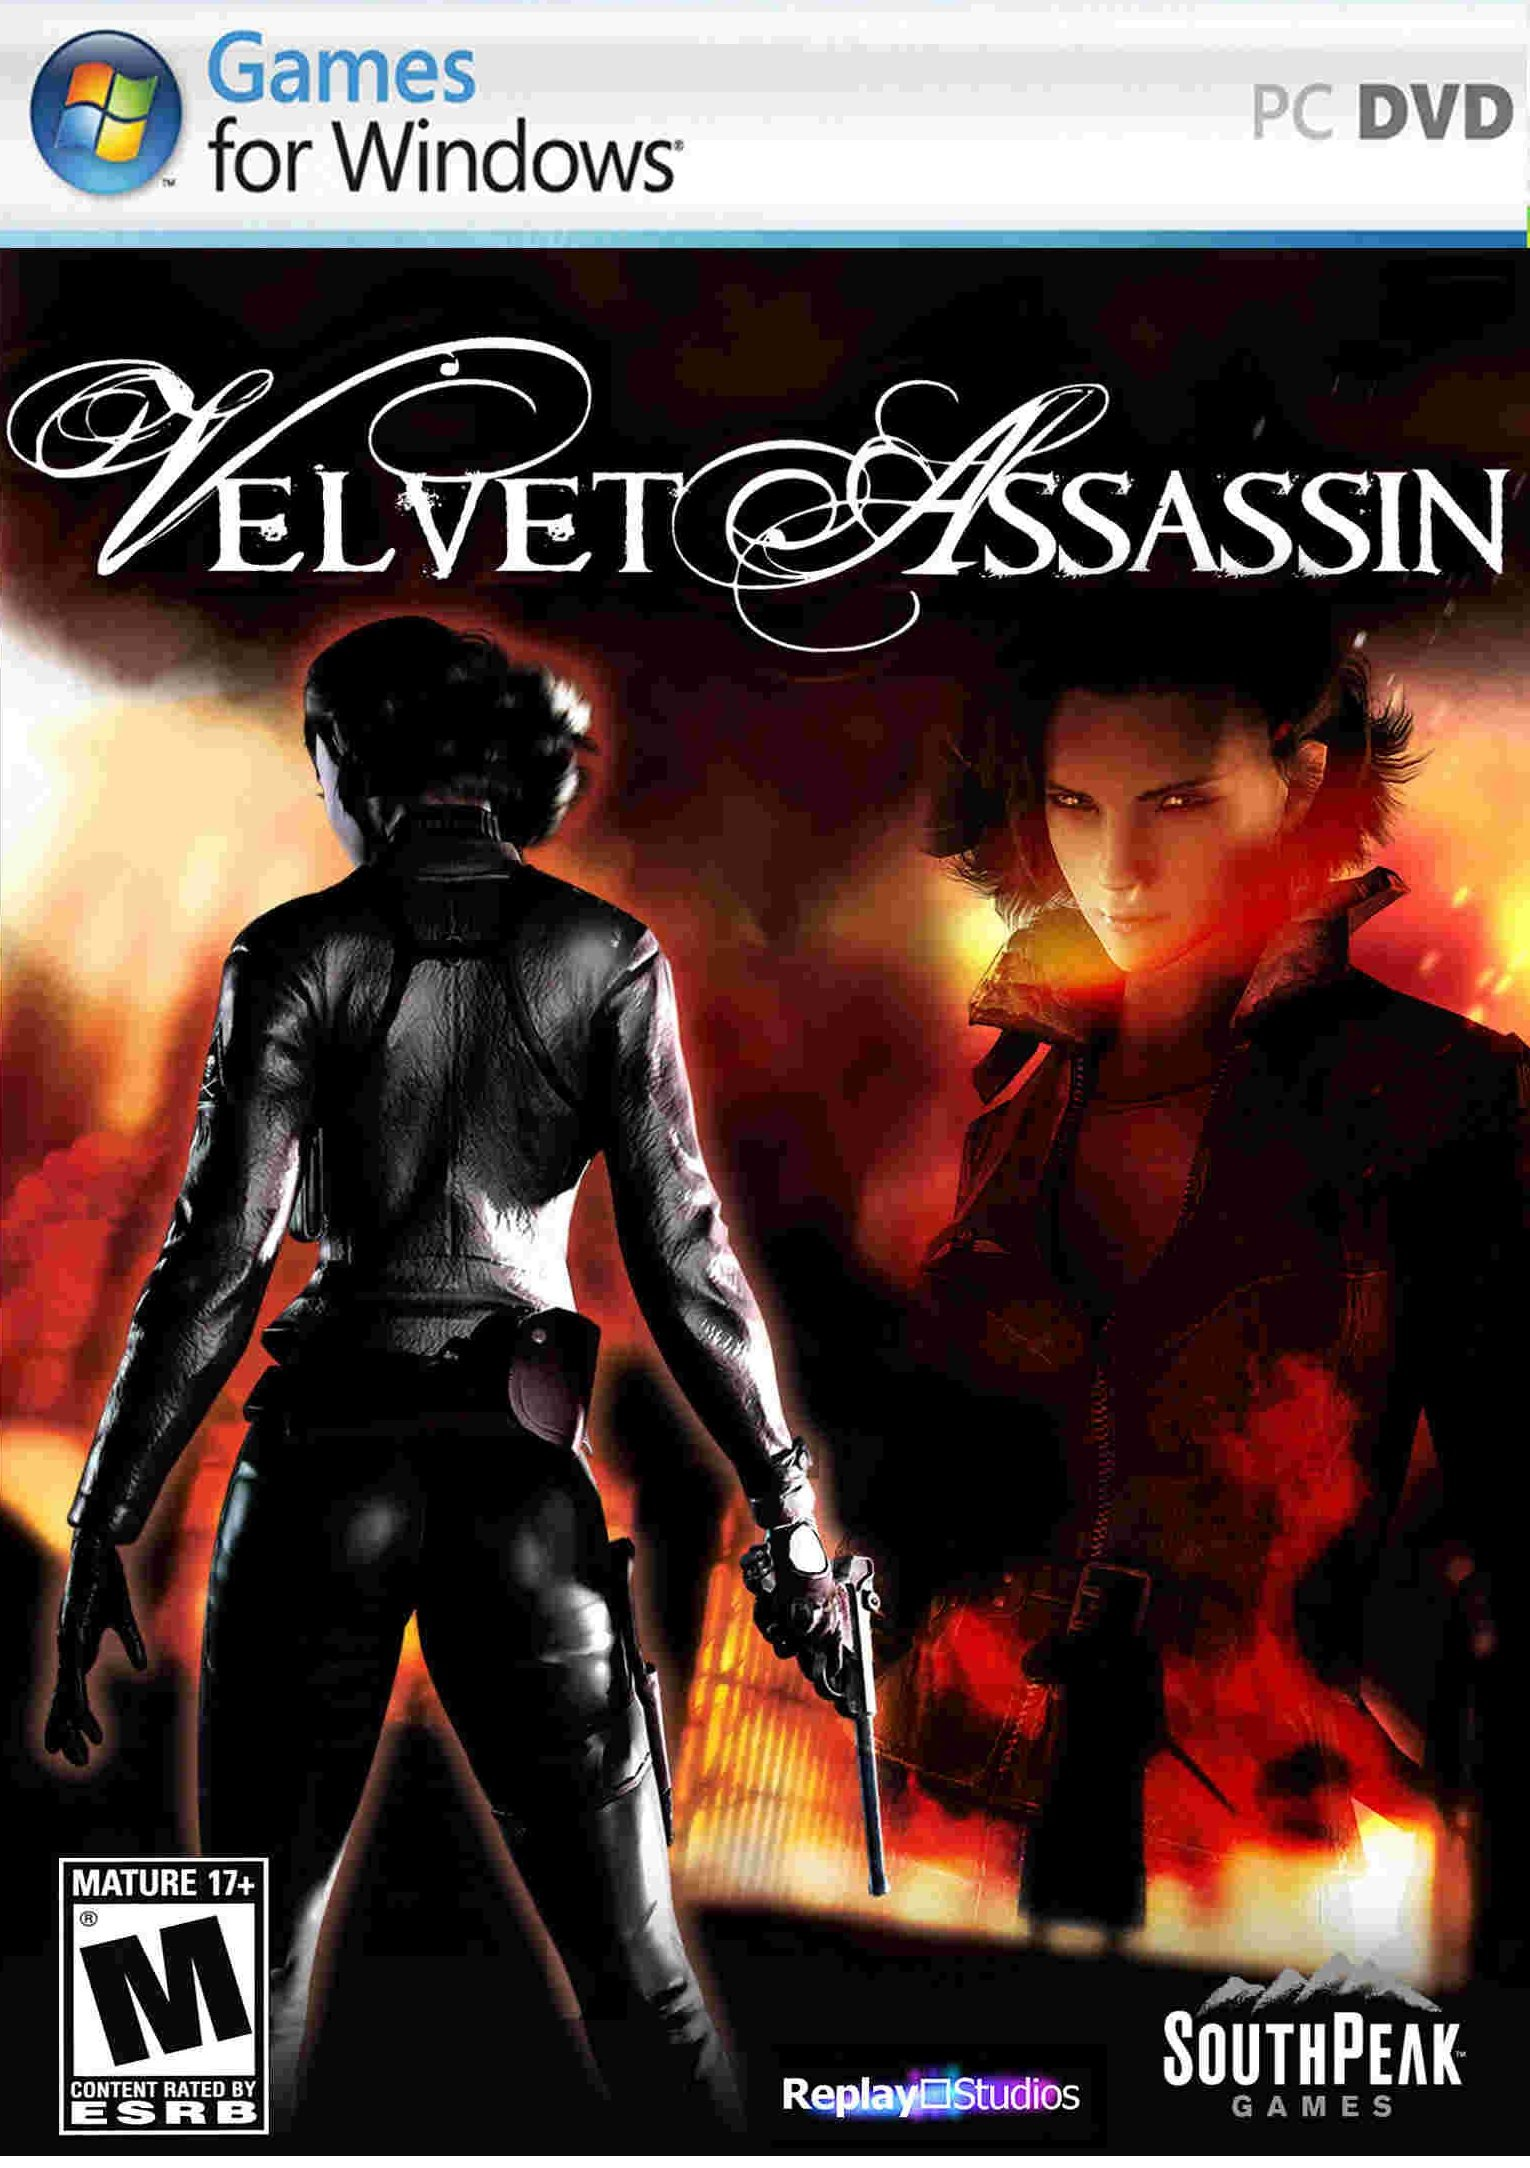 Velvet assassins pc dvd.png